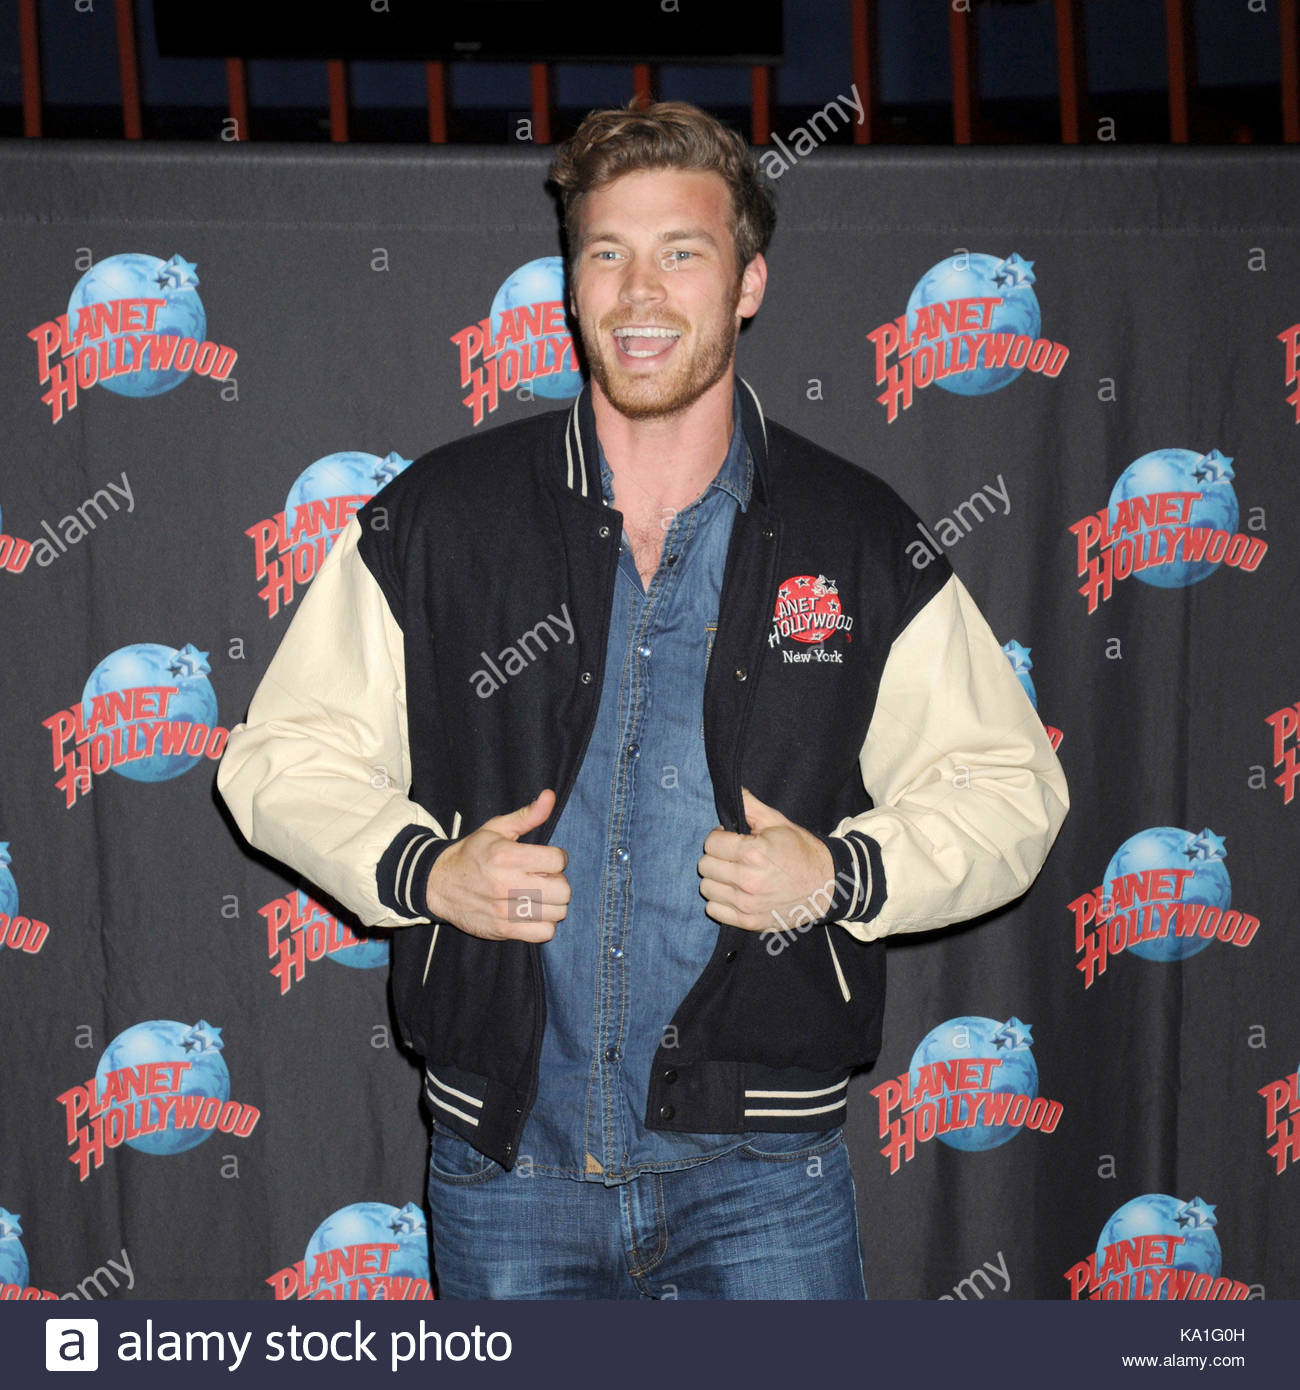 Derek theler actor derek theler star of abc familys baby daddy actor derek theler star of abc familys baby daddy hosts a meet and greet with fans at planet hollywood in times square nyc m4hsunfo Image collections